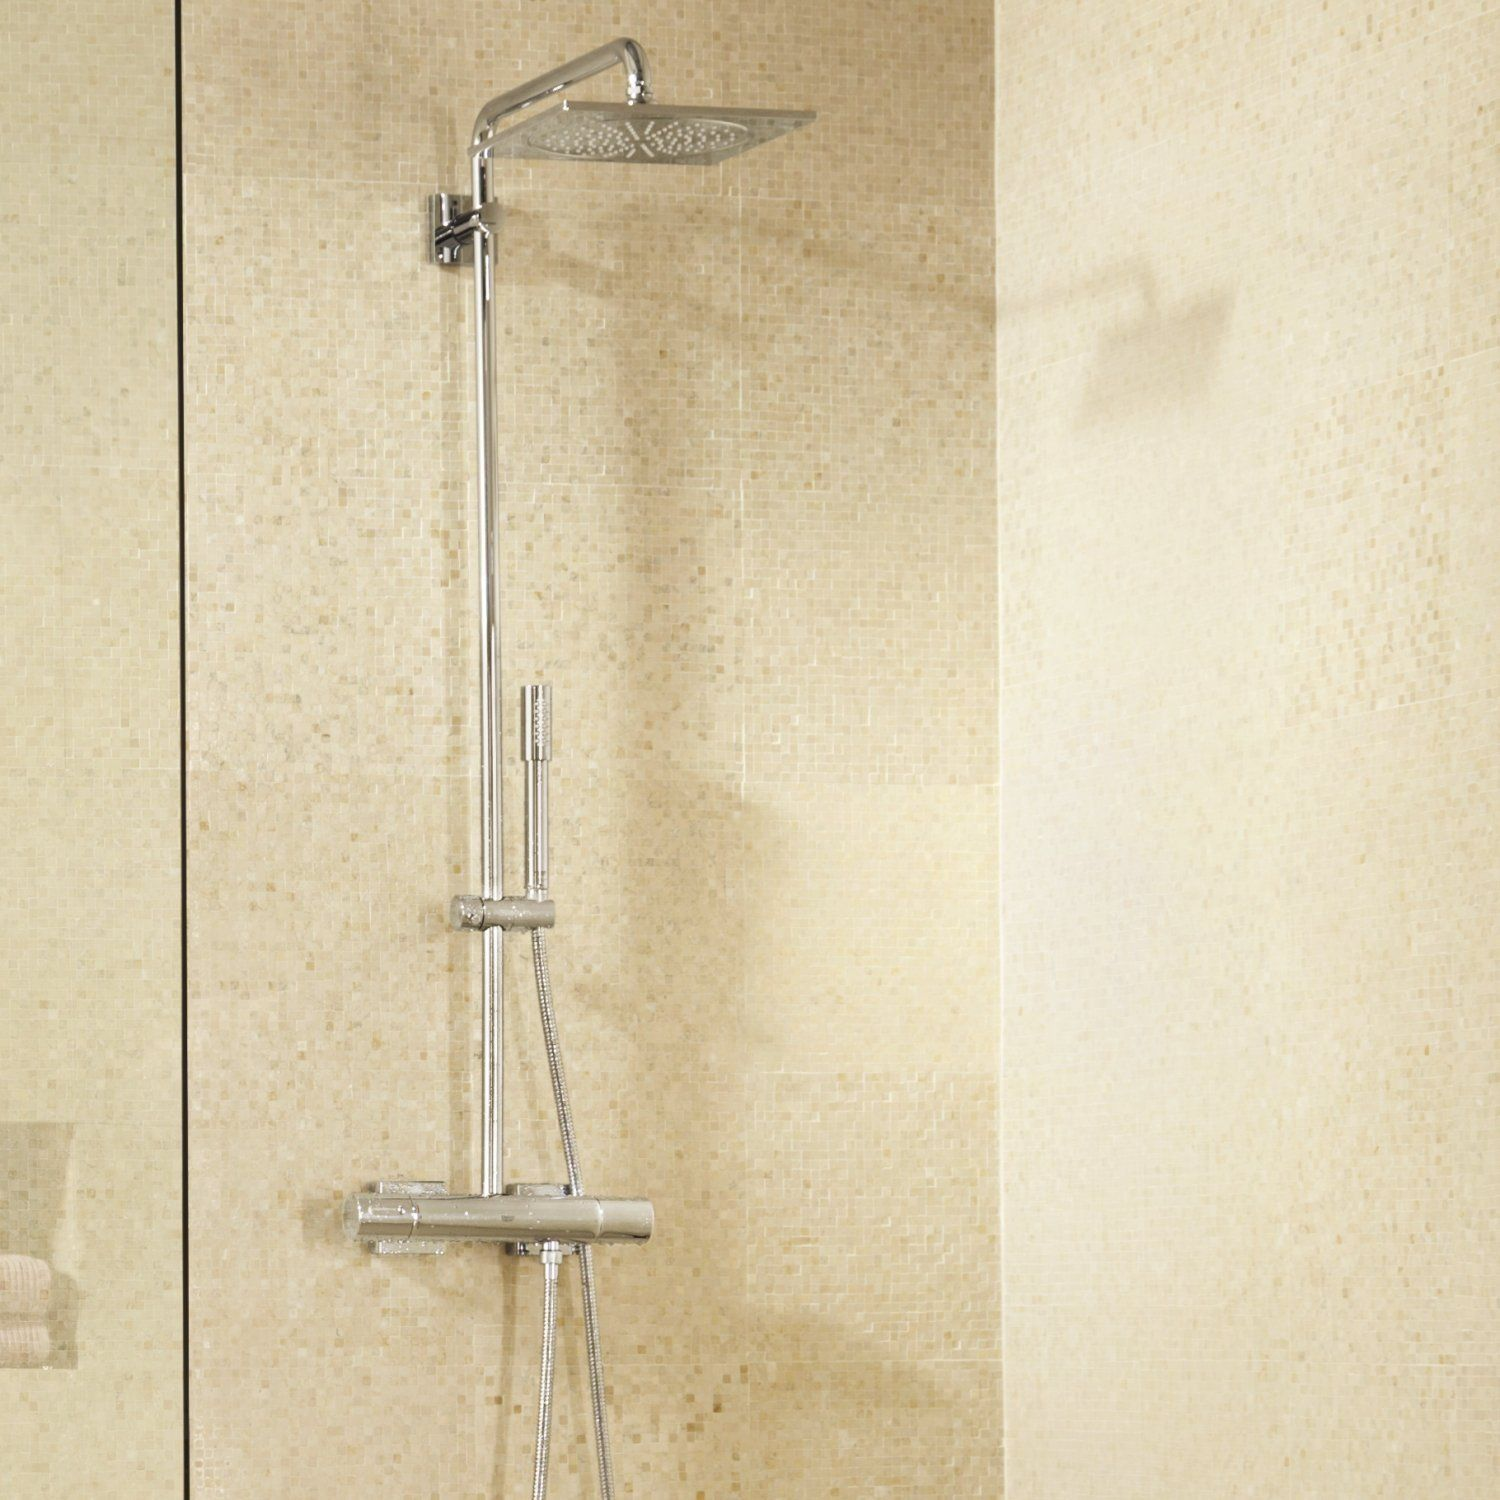 Grohe Doucheset Vitalio Start Grohe Douche Grohe With Grohe Douche Affordable Grohe Rainshower